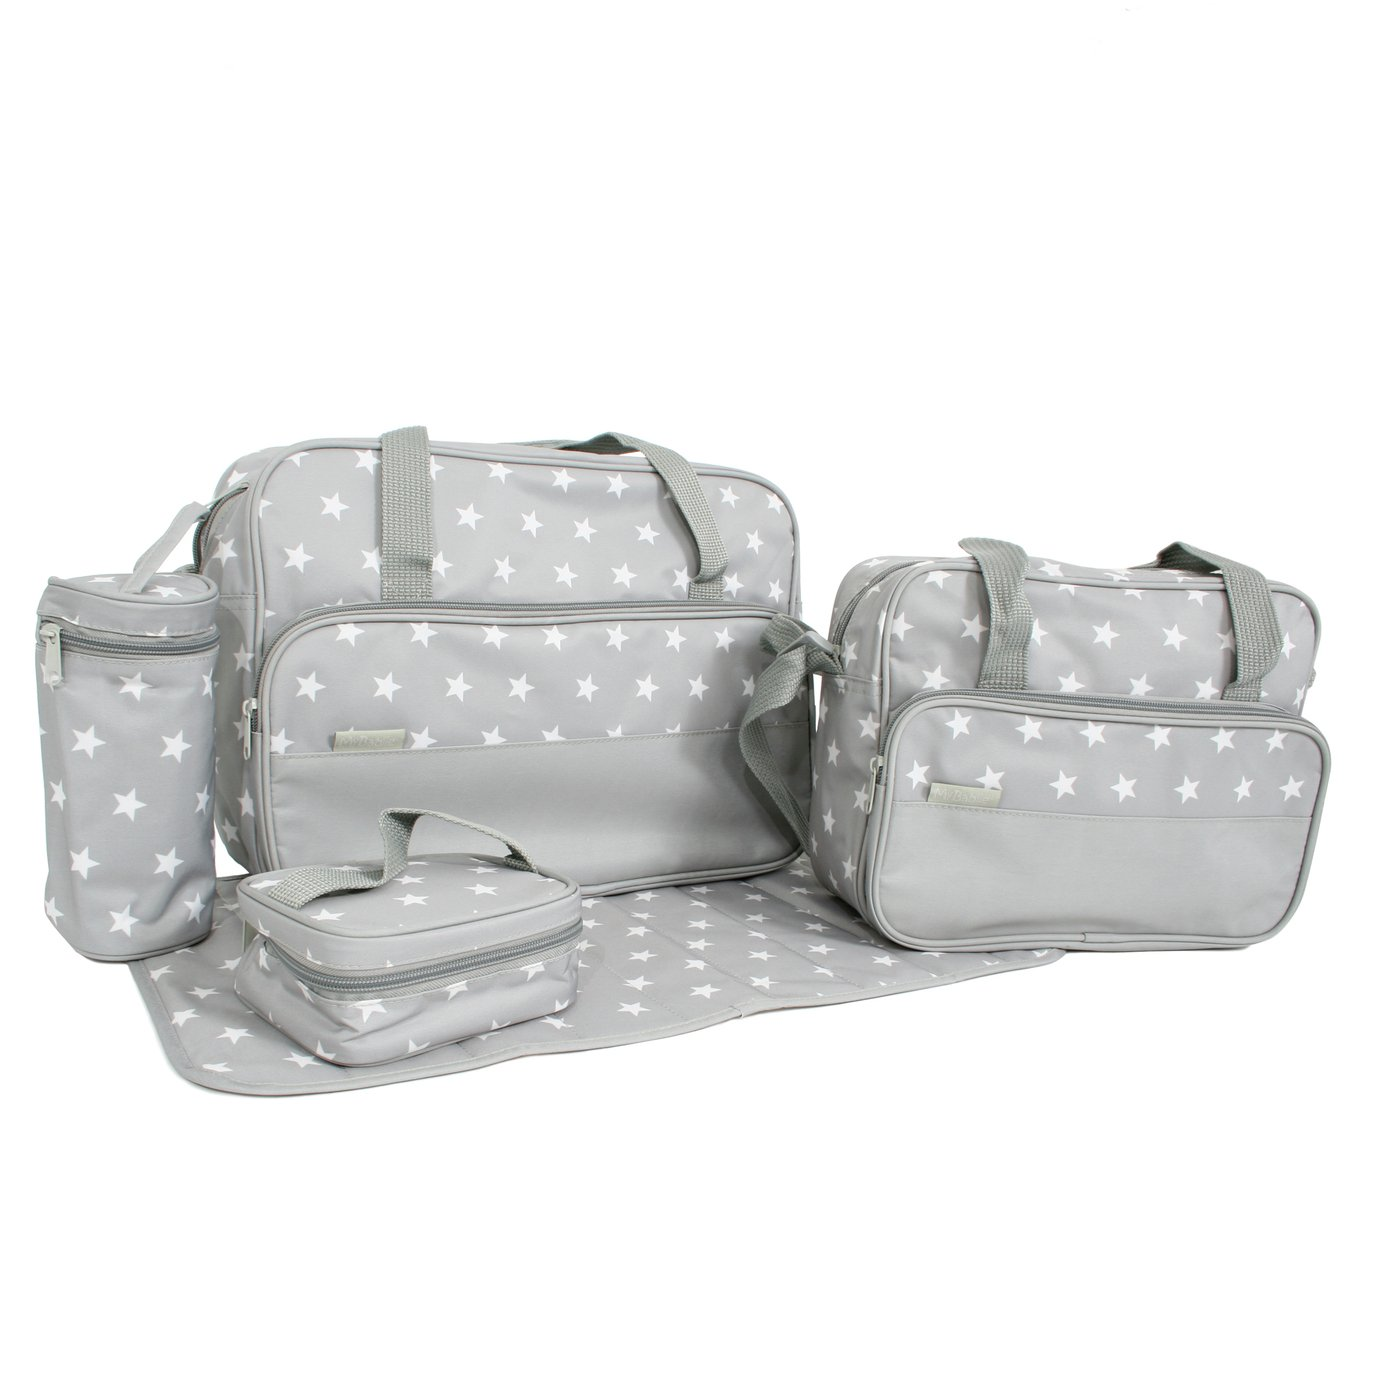 My Babiie 5 in 1 Changing Bag - Grey Stars